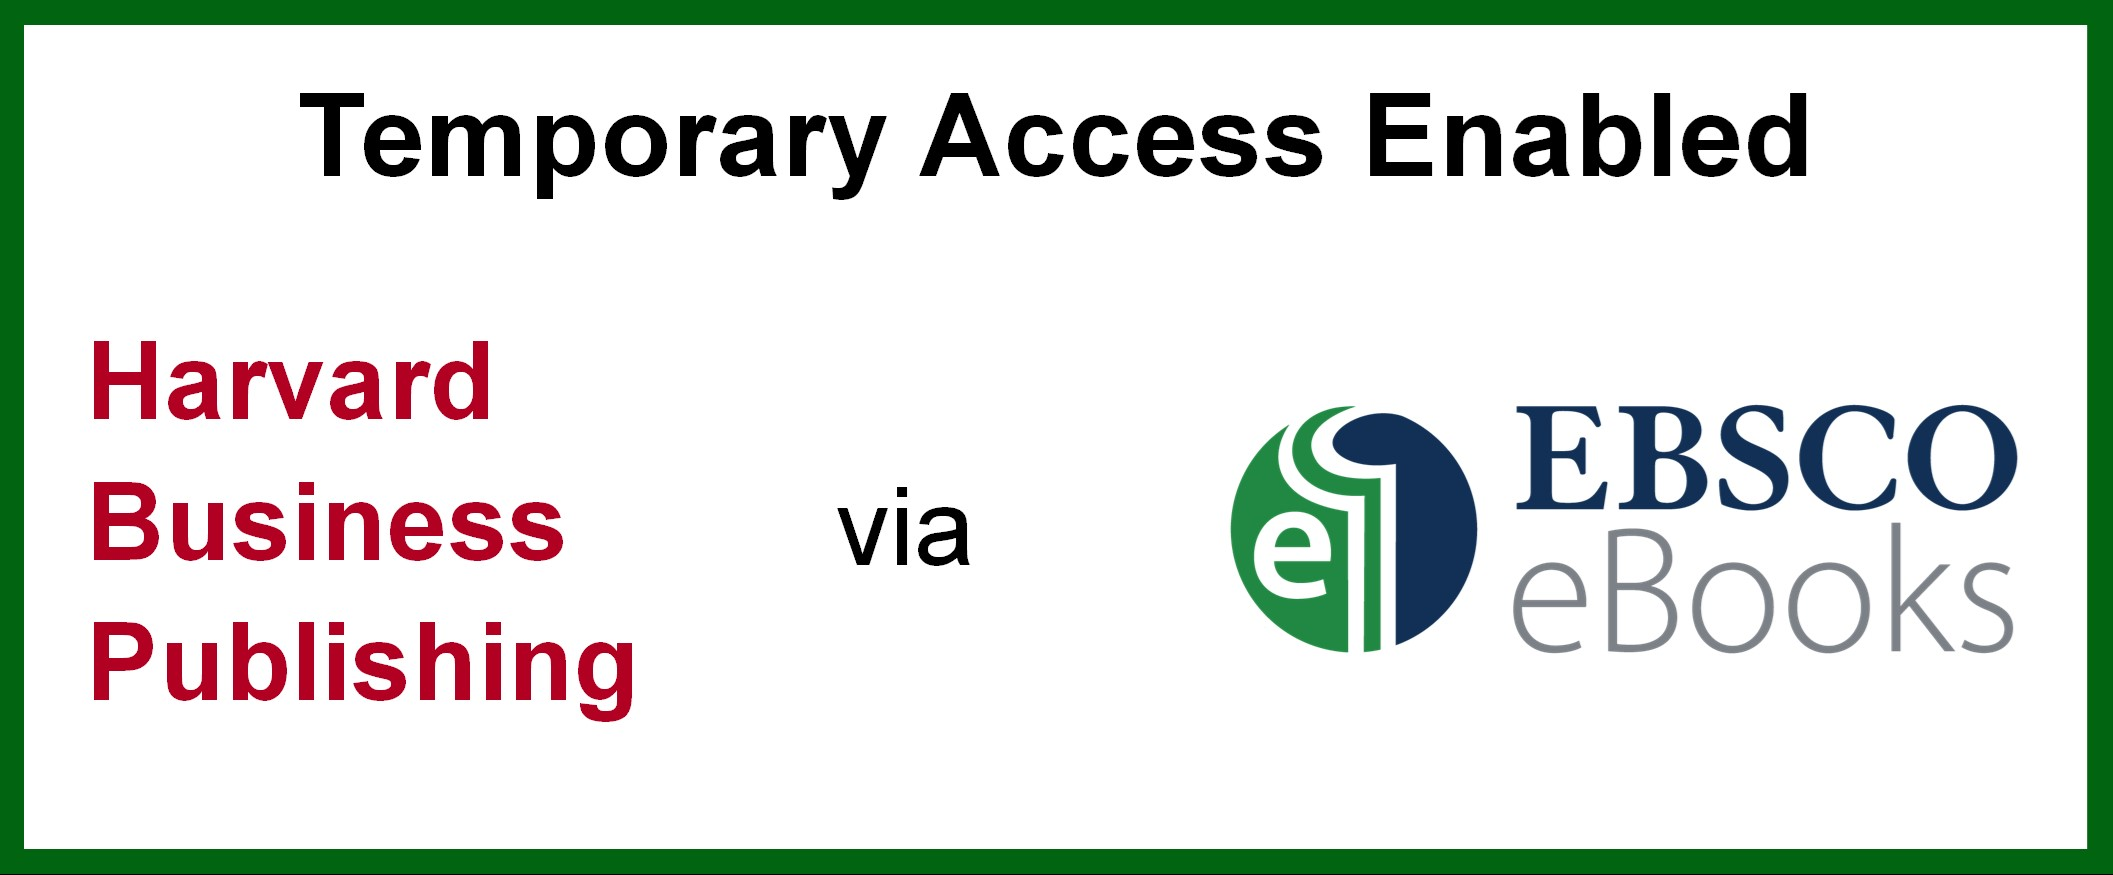 Temporary Access Enabled for Harvard Business Publishing via EBSCO eBooks